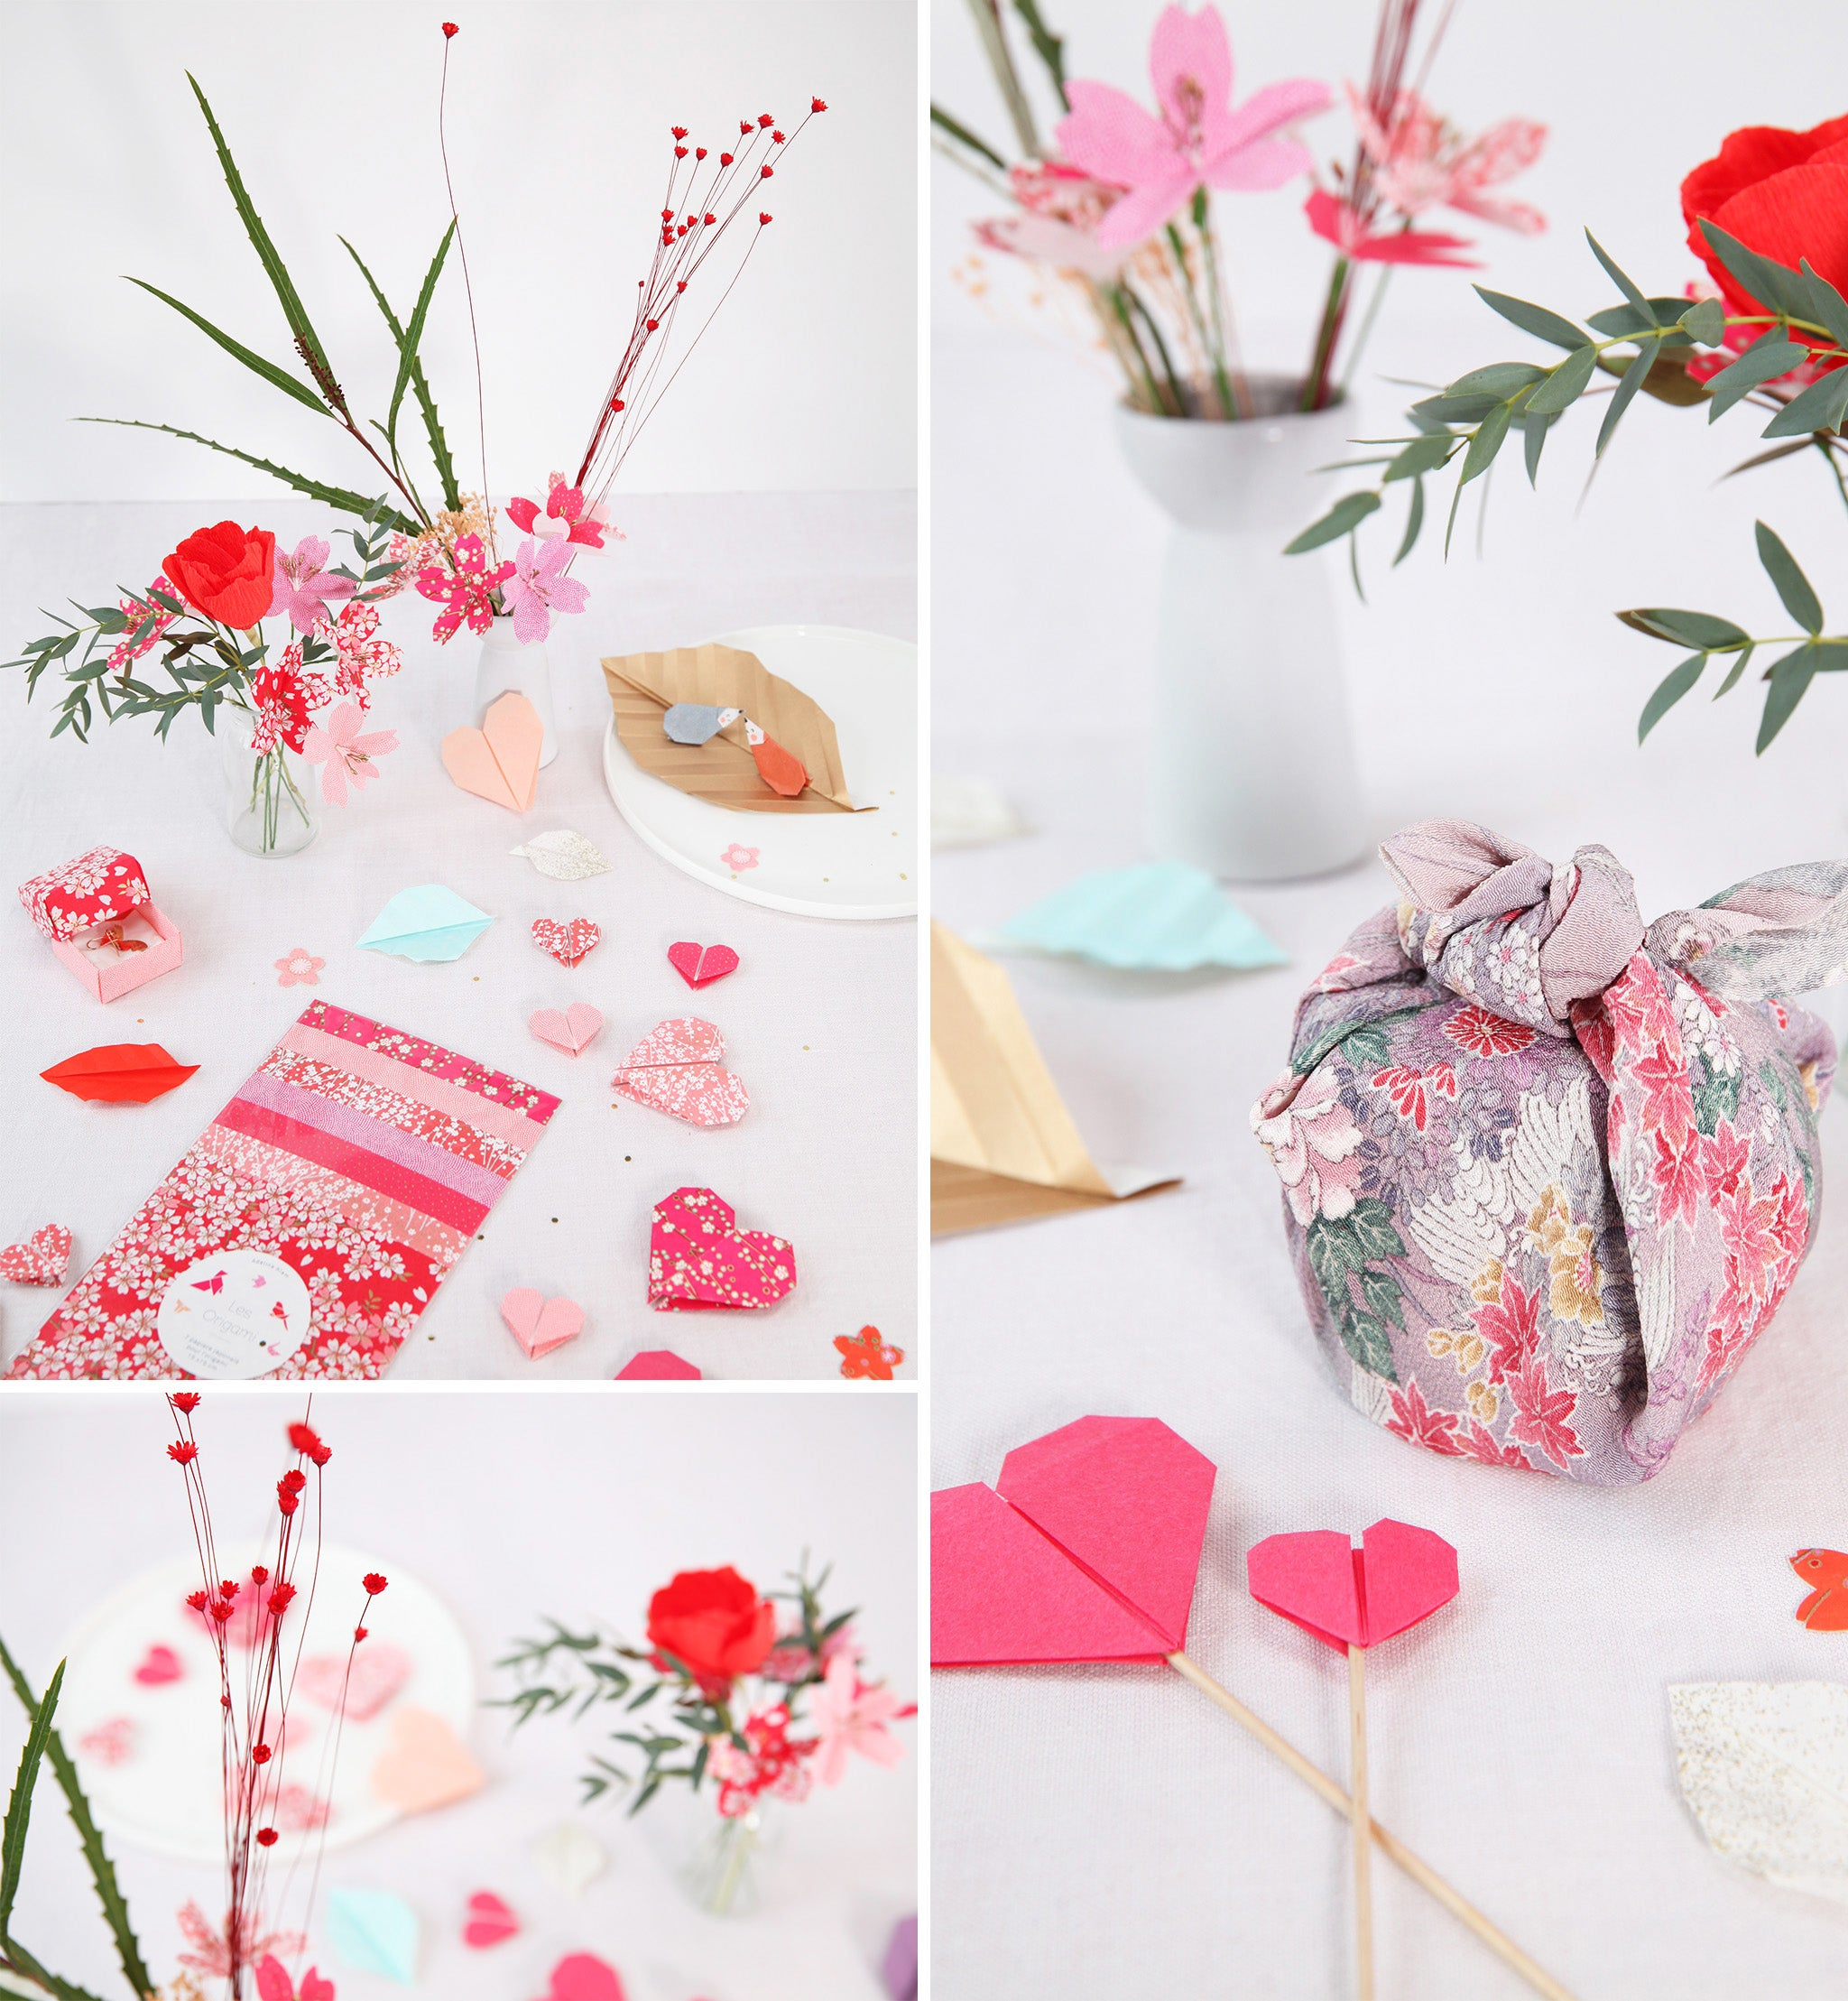 article-blog-5-diy-saint-valentin-ambiance-3